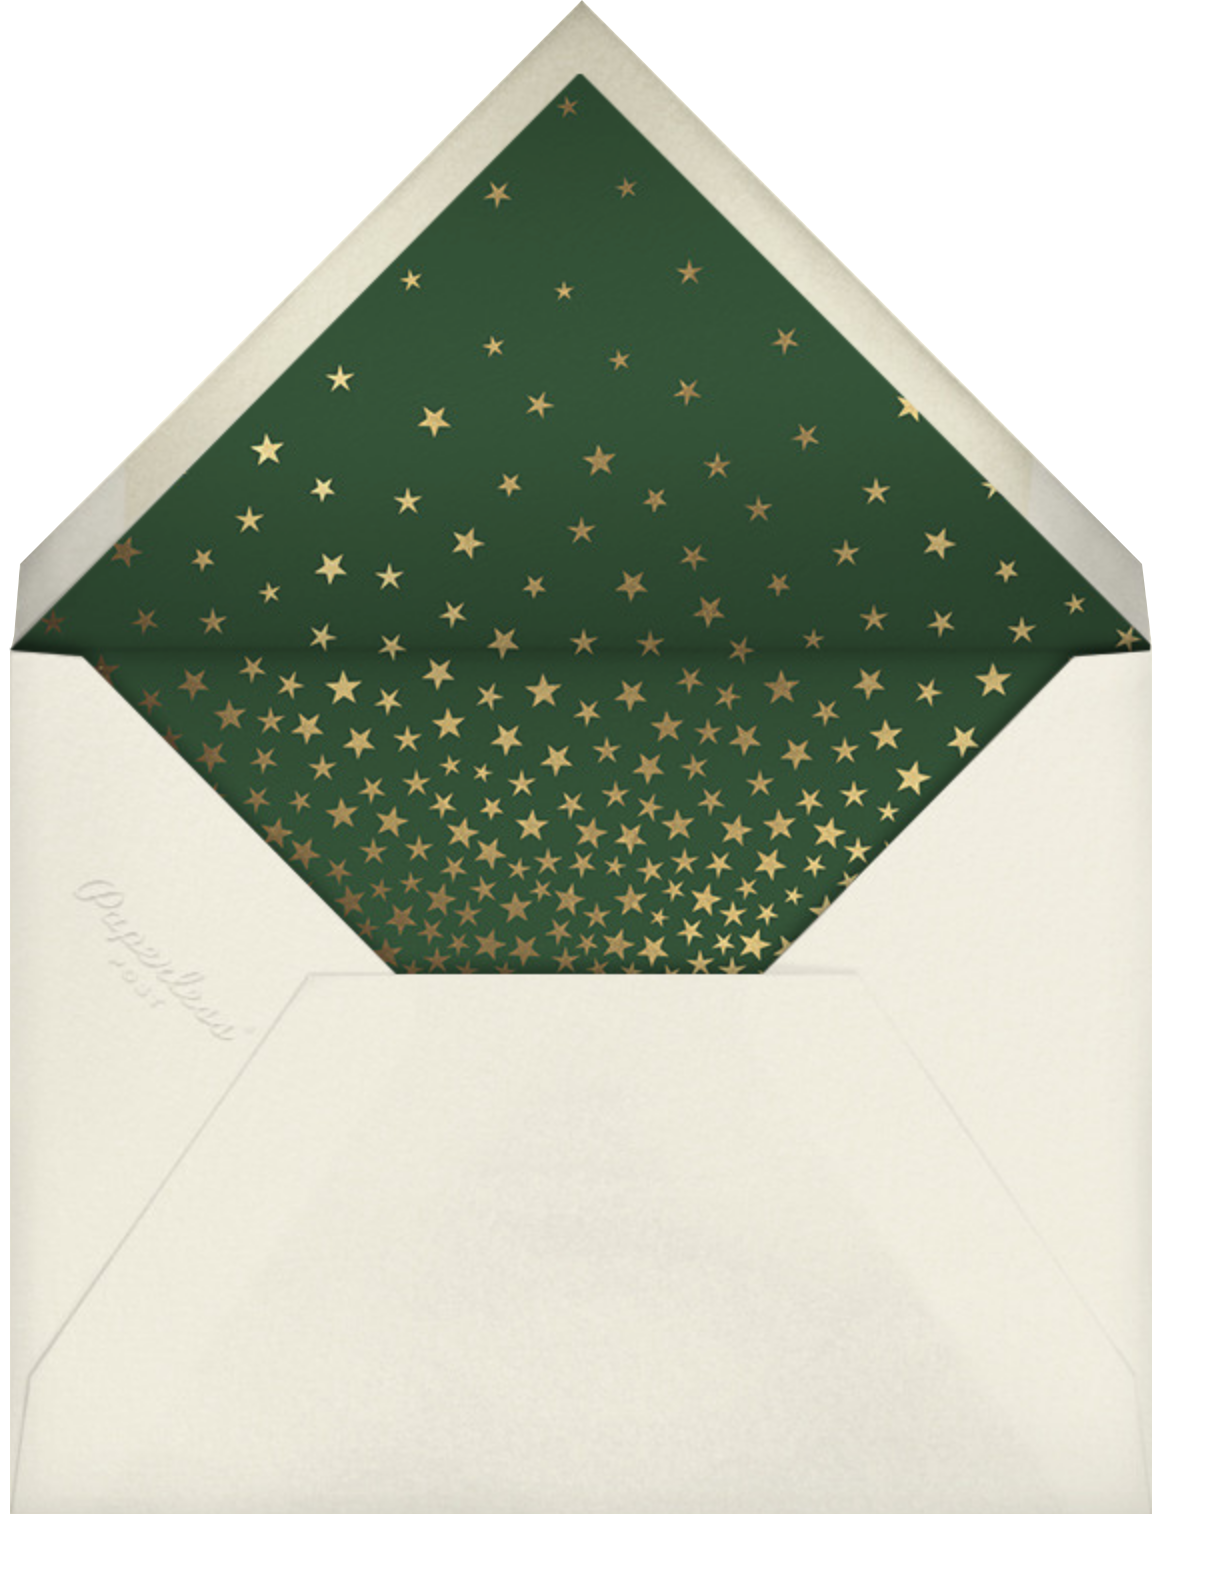 Starry Tree - Forest Green - Paperless Post - Envelope